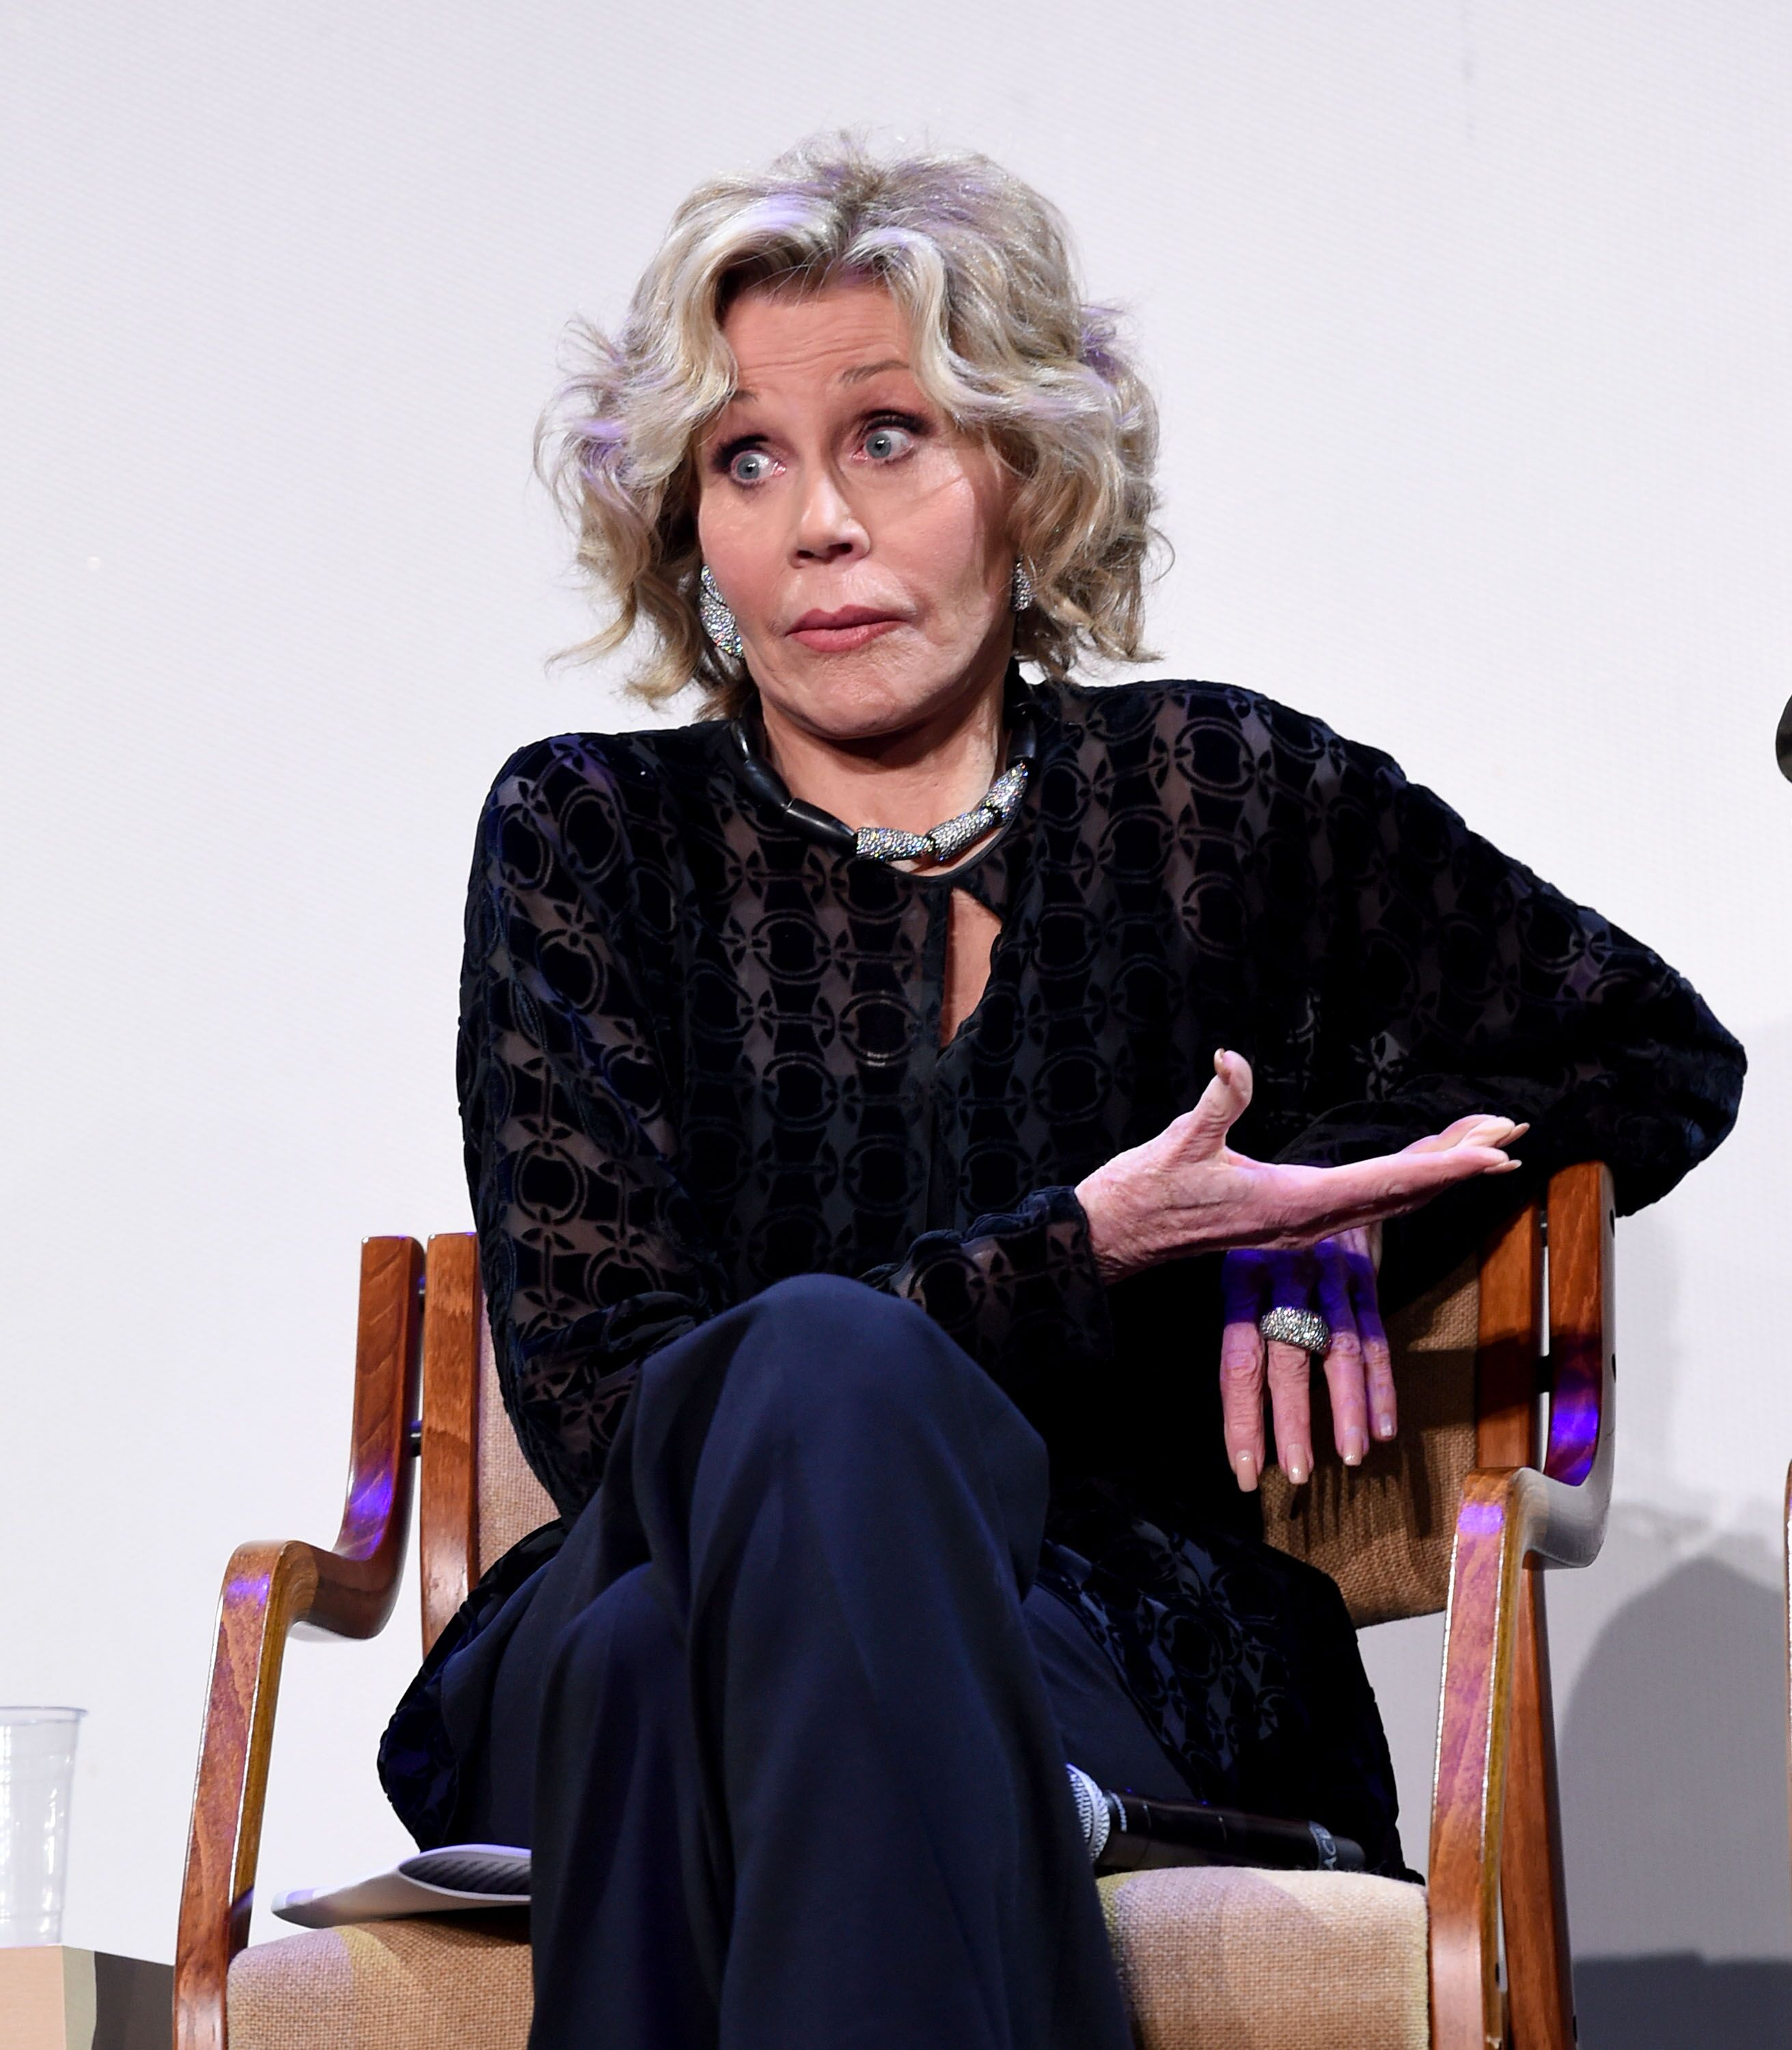 Jane Fonda appears onstage at the HFPA Film Restortion Summit: The Global Effort to Preserve Our Film Heritage at The Theatre at Ace Hotel on March 09, 2019 | Photo: Getty Images